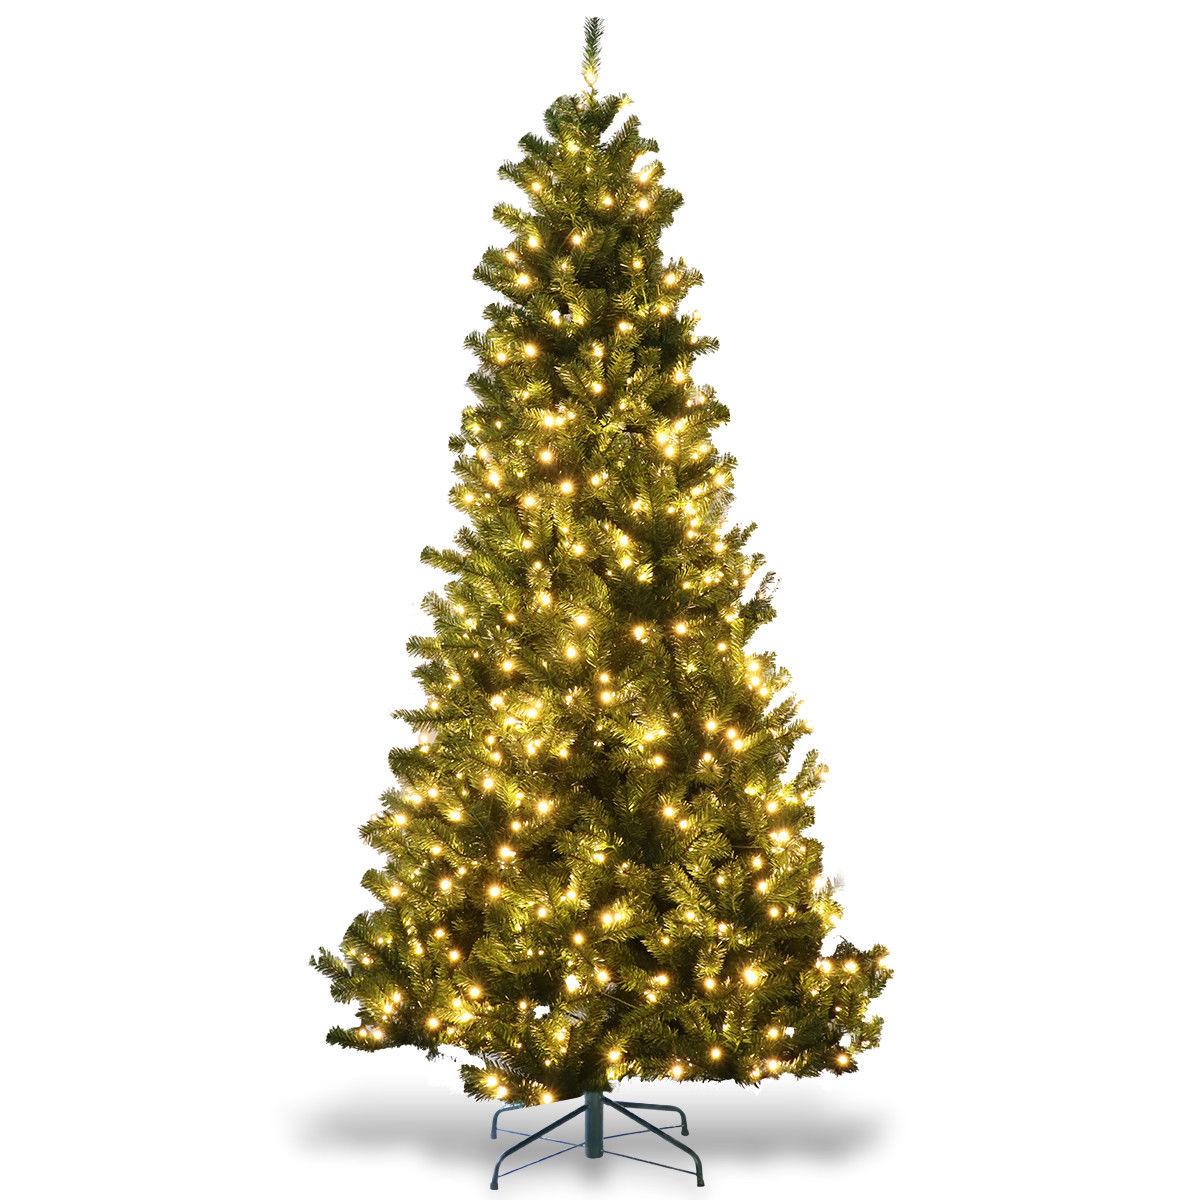 Gymax 7.5' Pre-Lit LED Light Christmas Tree Artificial PVC with Stand Holiday Decor - image 2 of 7